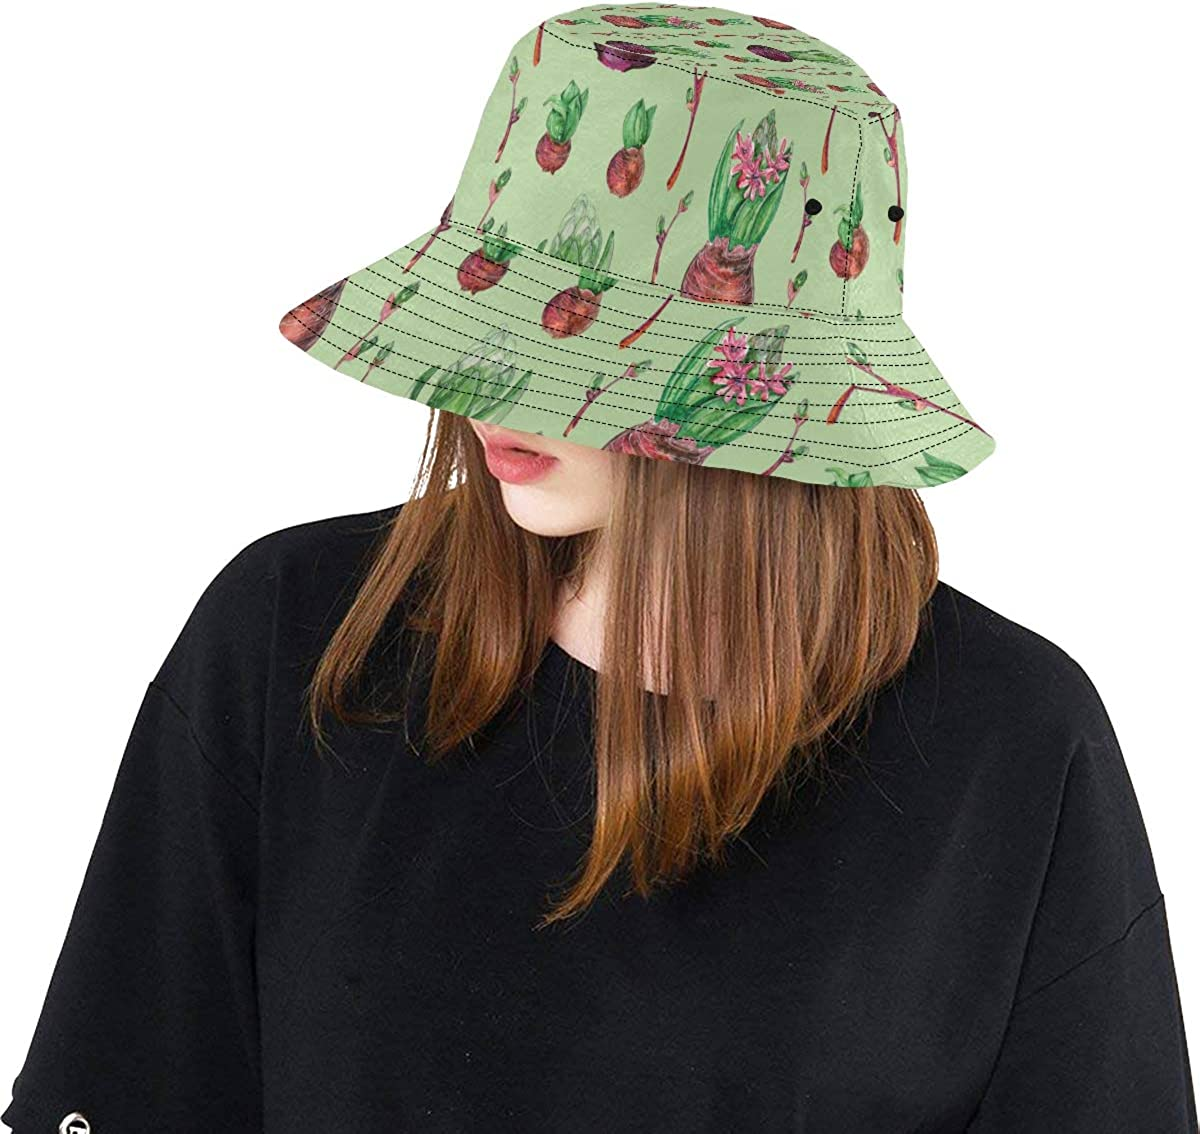 Top Hats Summer Unisex Bucket Hat Hyacinth Romantic Flowers Reversible Fisherman Cap Travel Fishing Picnic Caps for Lady Fisherman